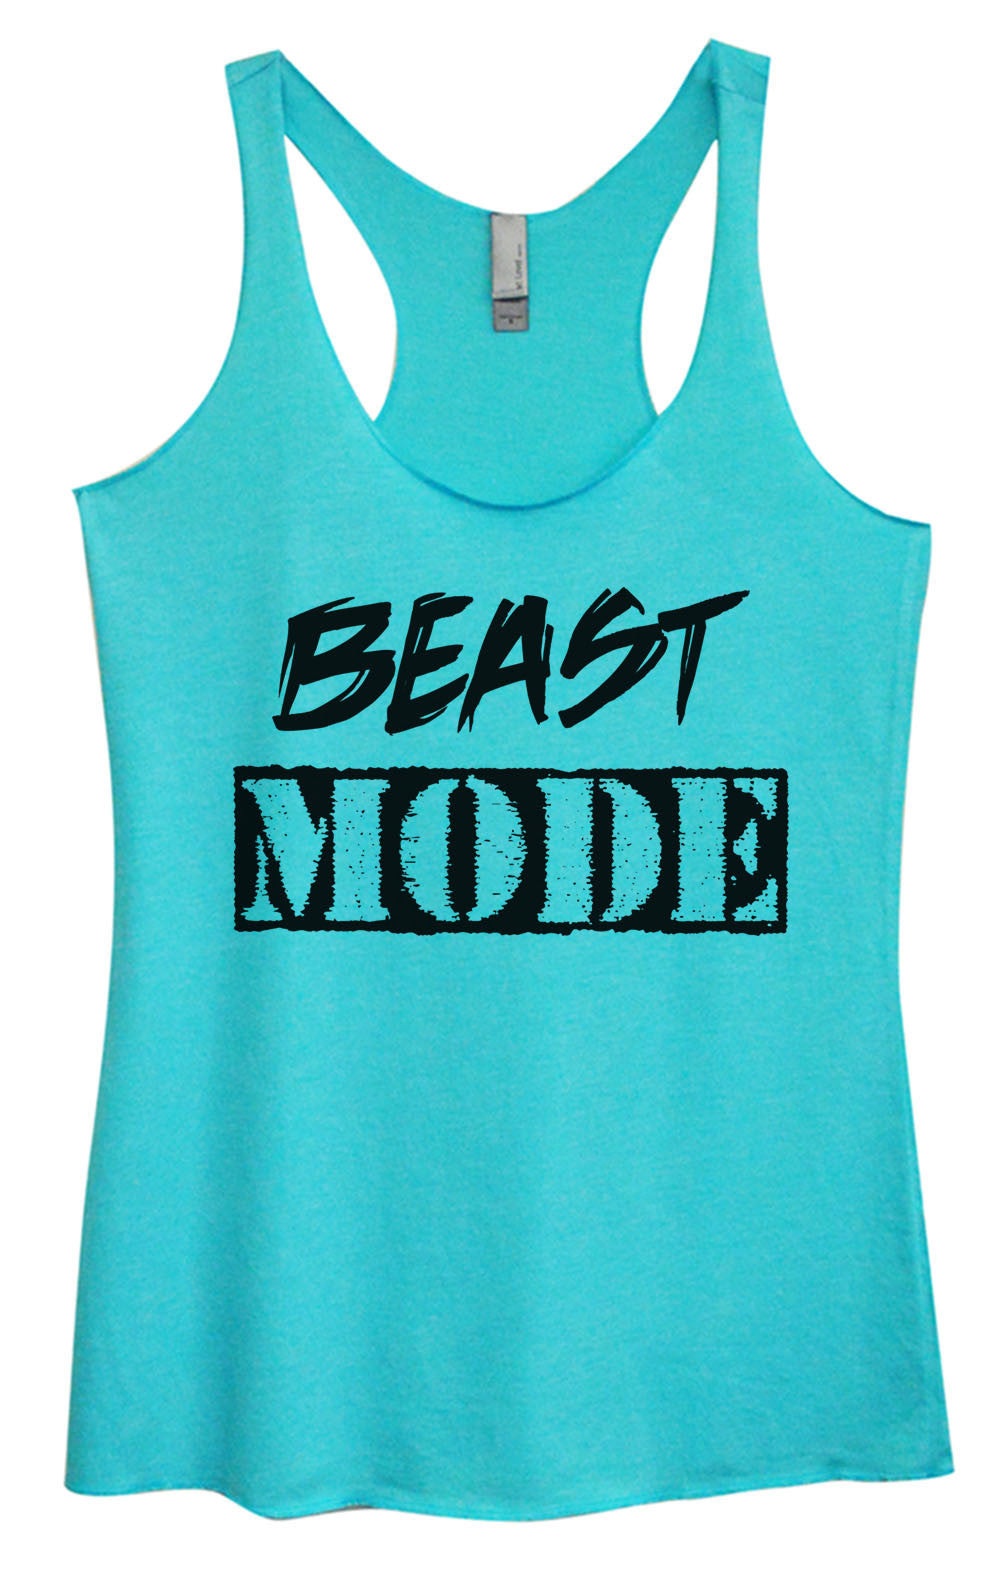 Womens Fashion Triblend Tank Top - Beast Mode - Tri-823 - Funny Shirts Tank Tops Burnouts and Triblends  - 4